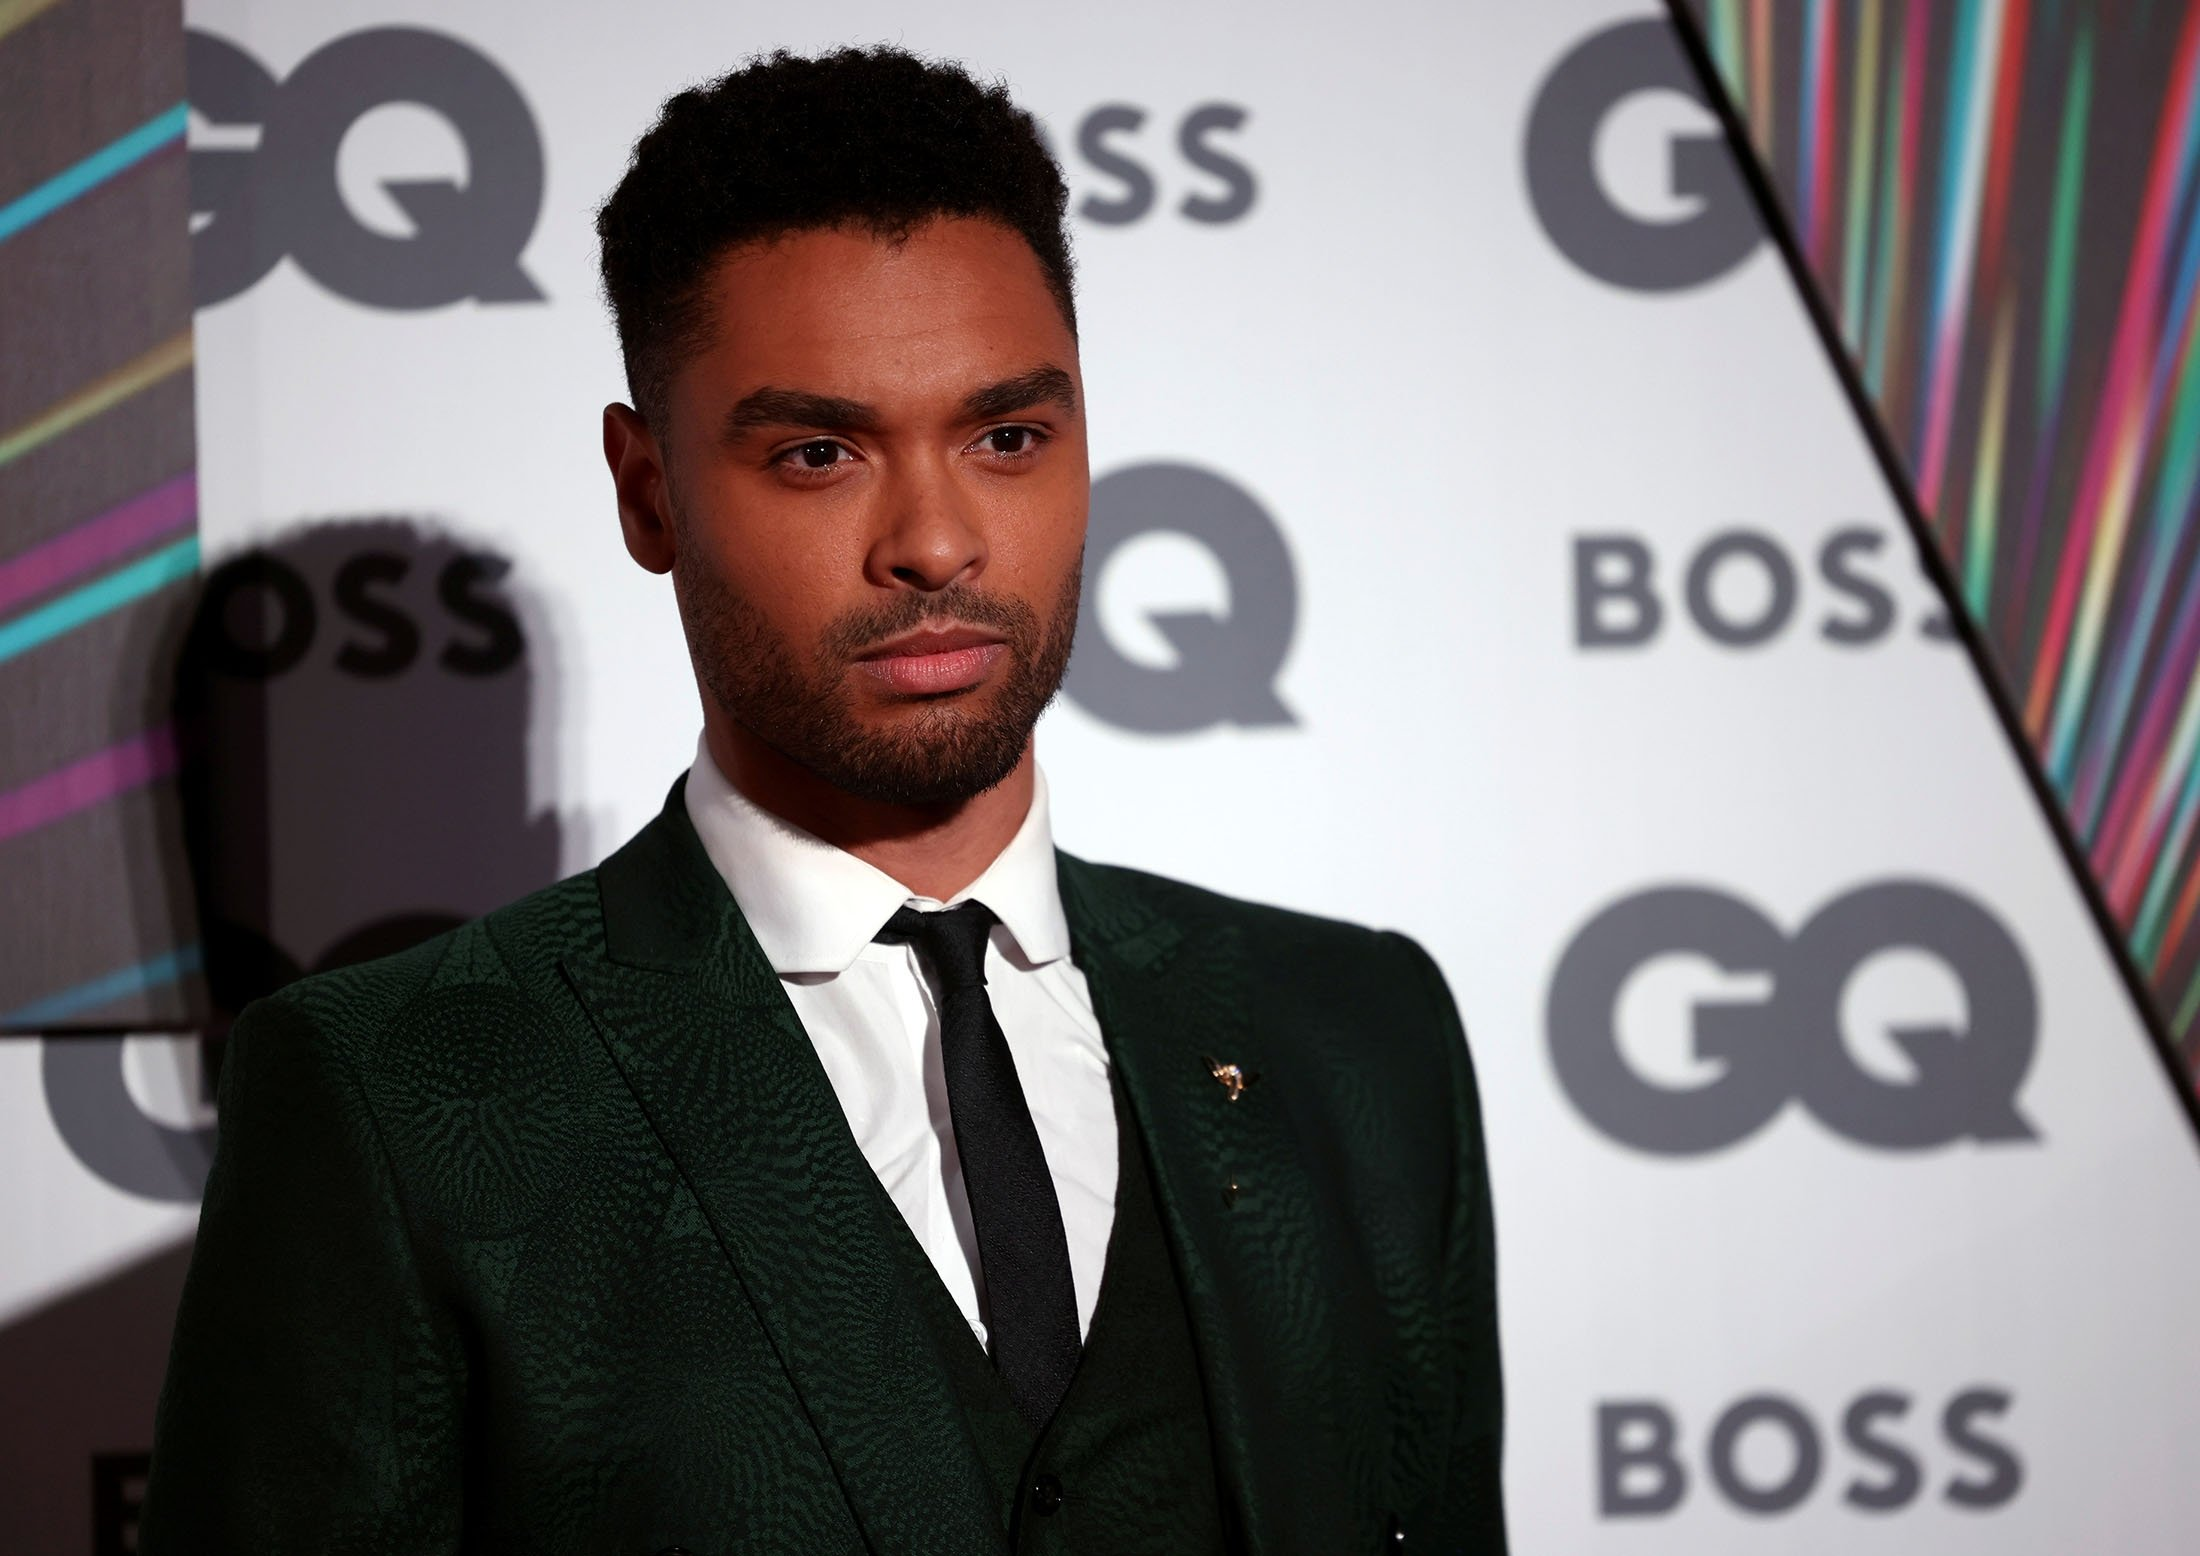 Actor Rege-Jean Page arrives to the GQ Men Of The Year Awards 2021 in London, U.K., Sept. 1, 2021. (Reuters Photo)